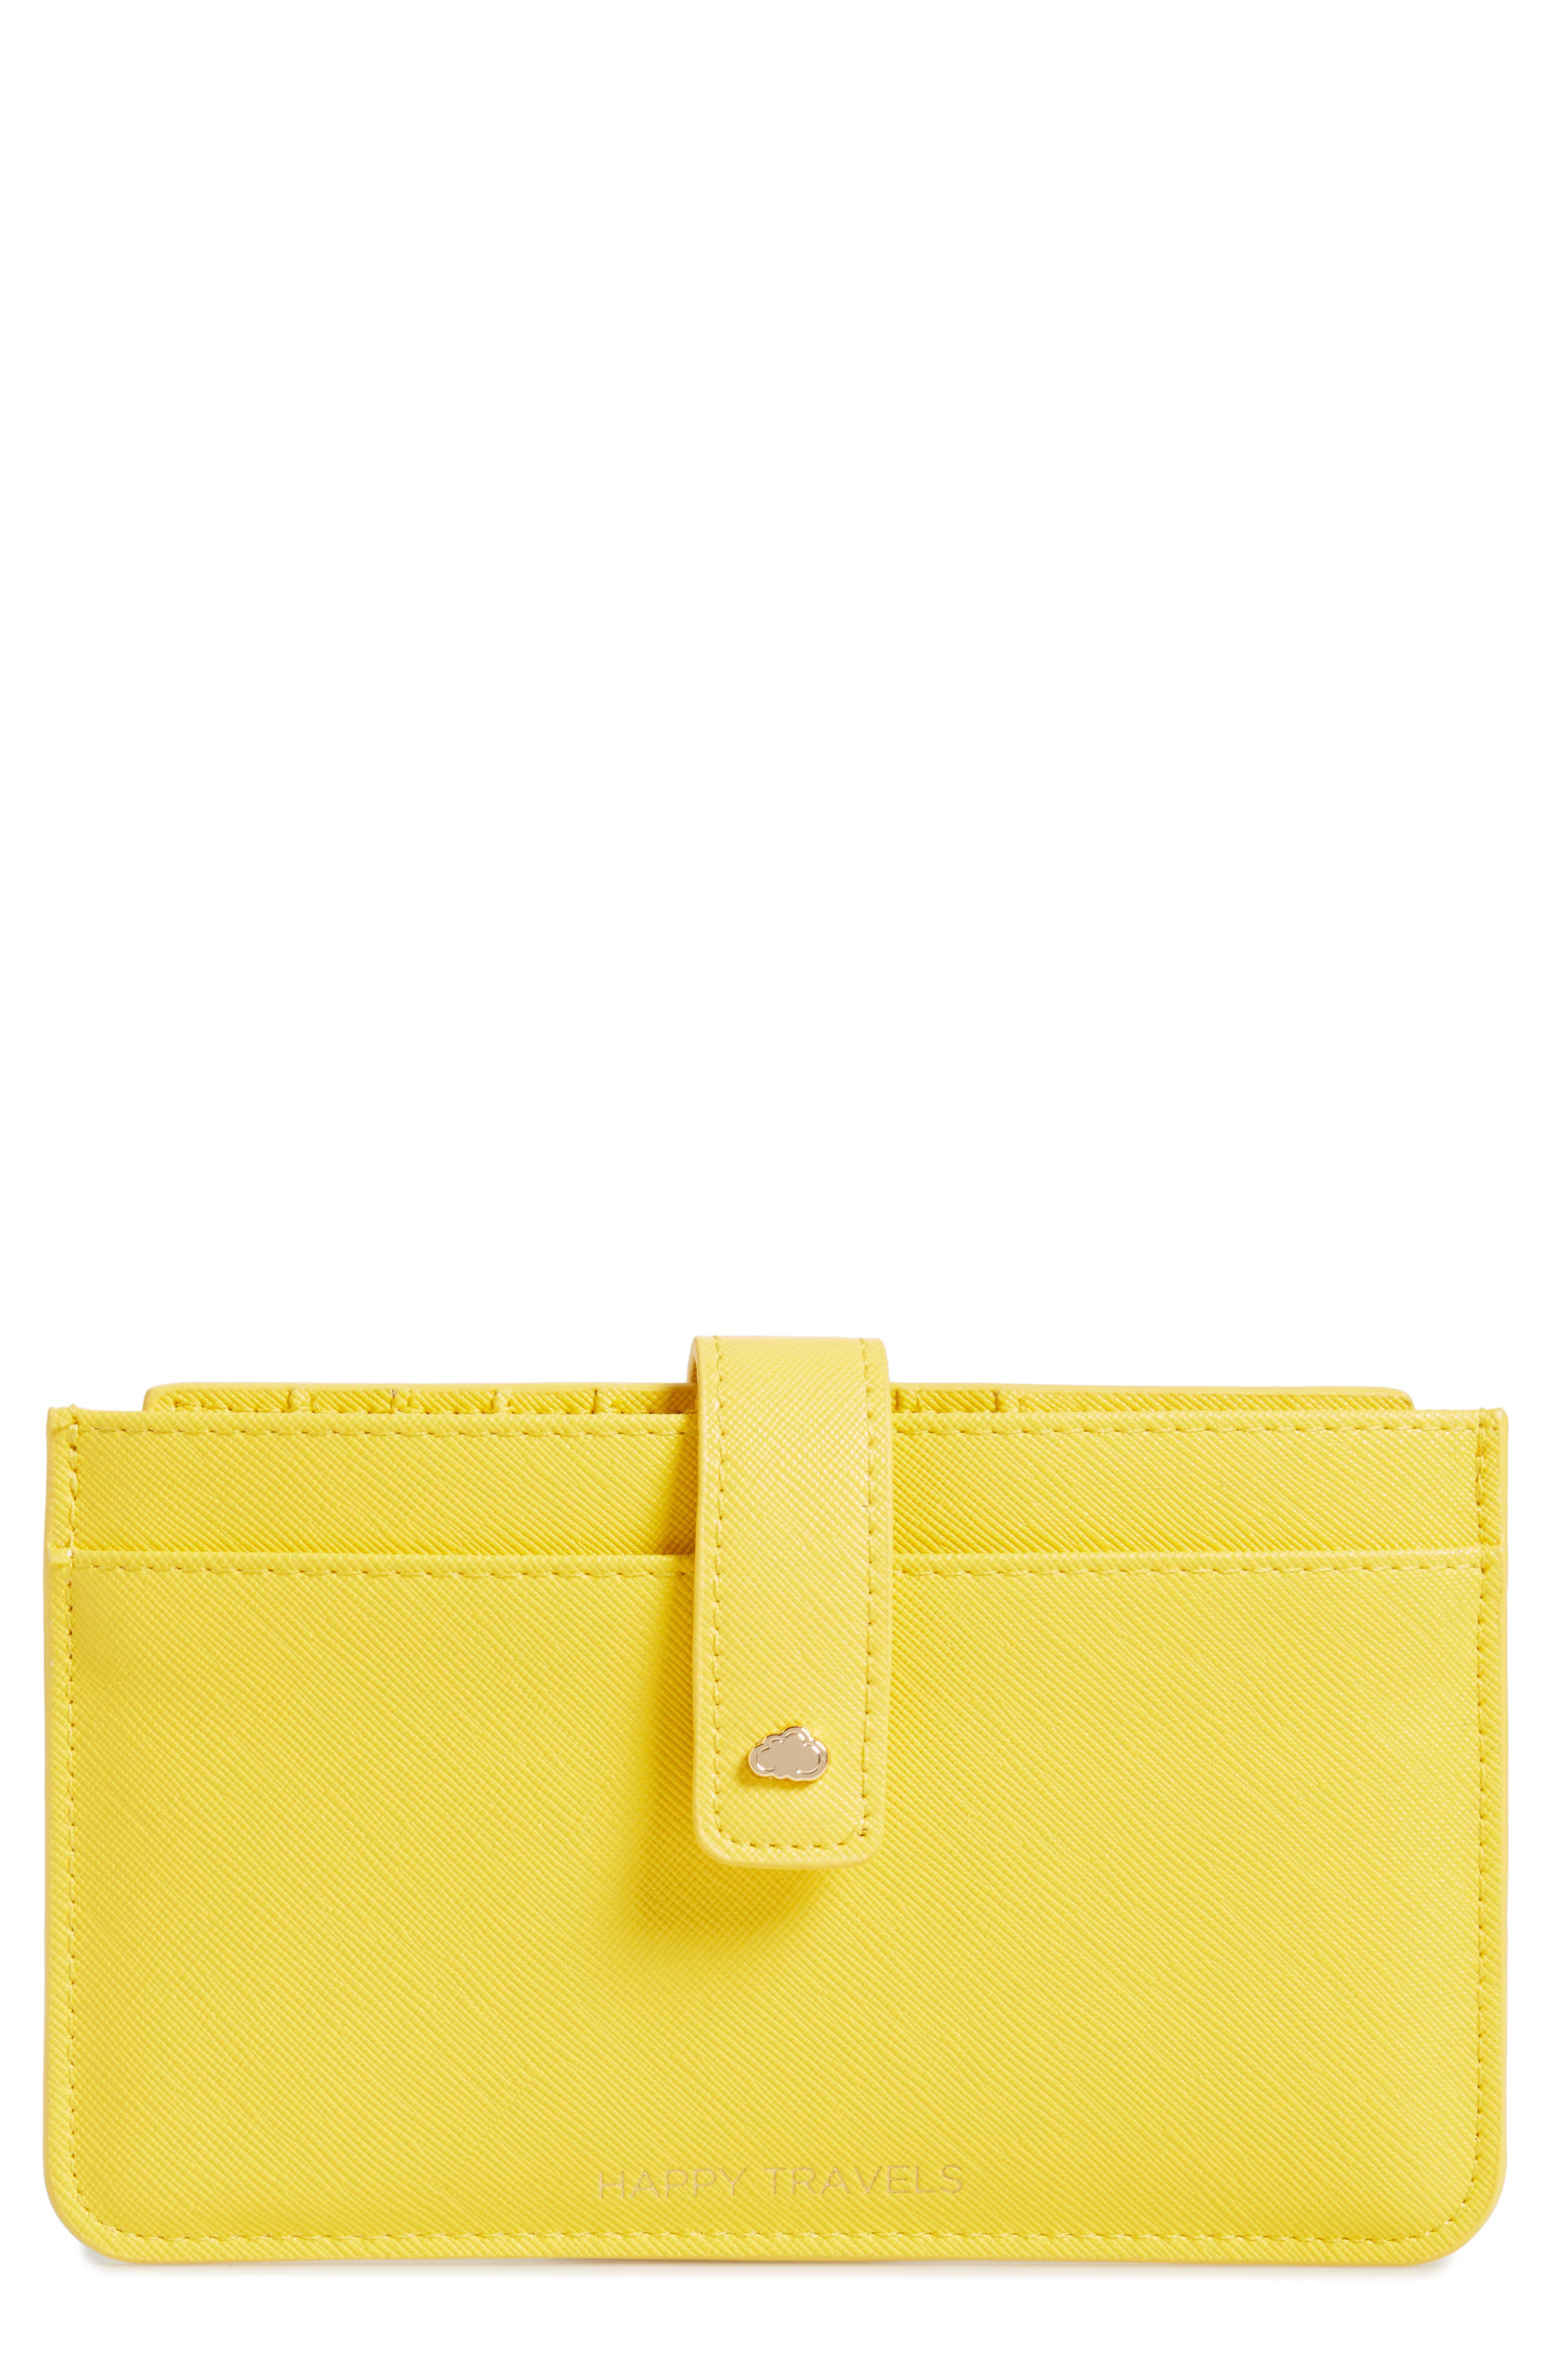 Main Image - Estella Bartlett Happy Travels Faux Leather Document Wallet